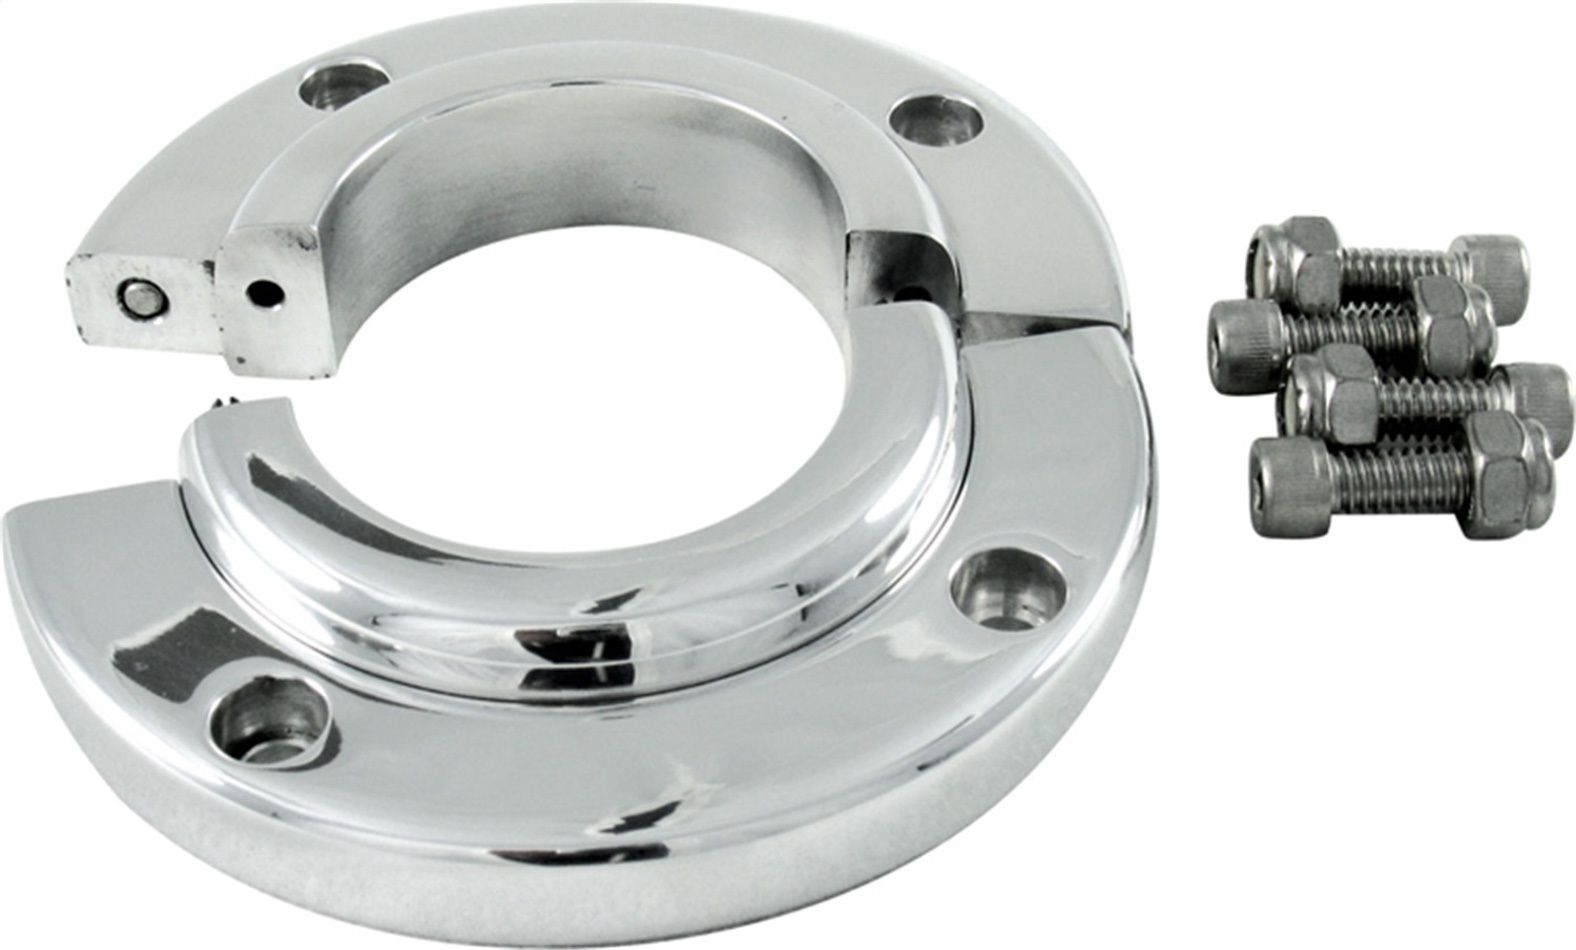 Borgeson 909008 Steering Column Bracket, Split, 4-1/8 in Outer Diameter, 2 in Diameter Tube, Swivel, Aluminum, Polished, Each